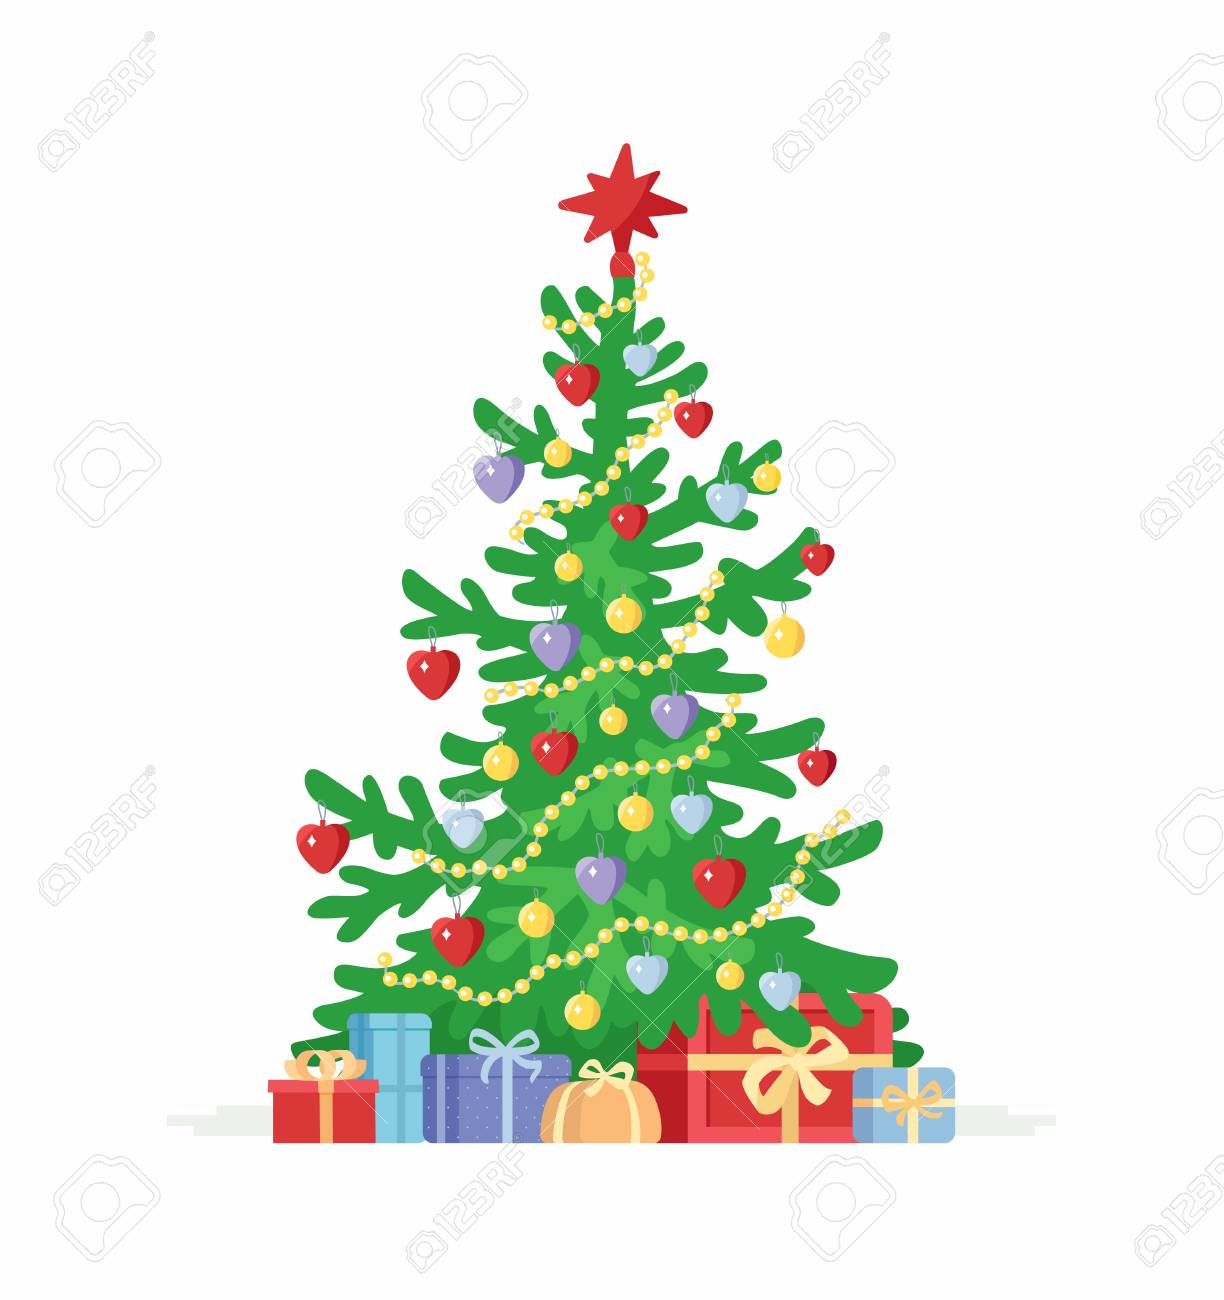 Christmas Tree Cartoon Characters Isolated Illustration On Royalty Free Cliparts Vectors And Stock Illustration Image 88883561 Colorful christmas new year winter tree with decorations and presents template. christmas tree cartoon characters isolated illustration on